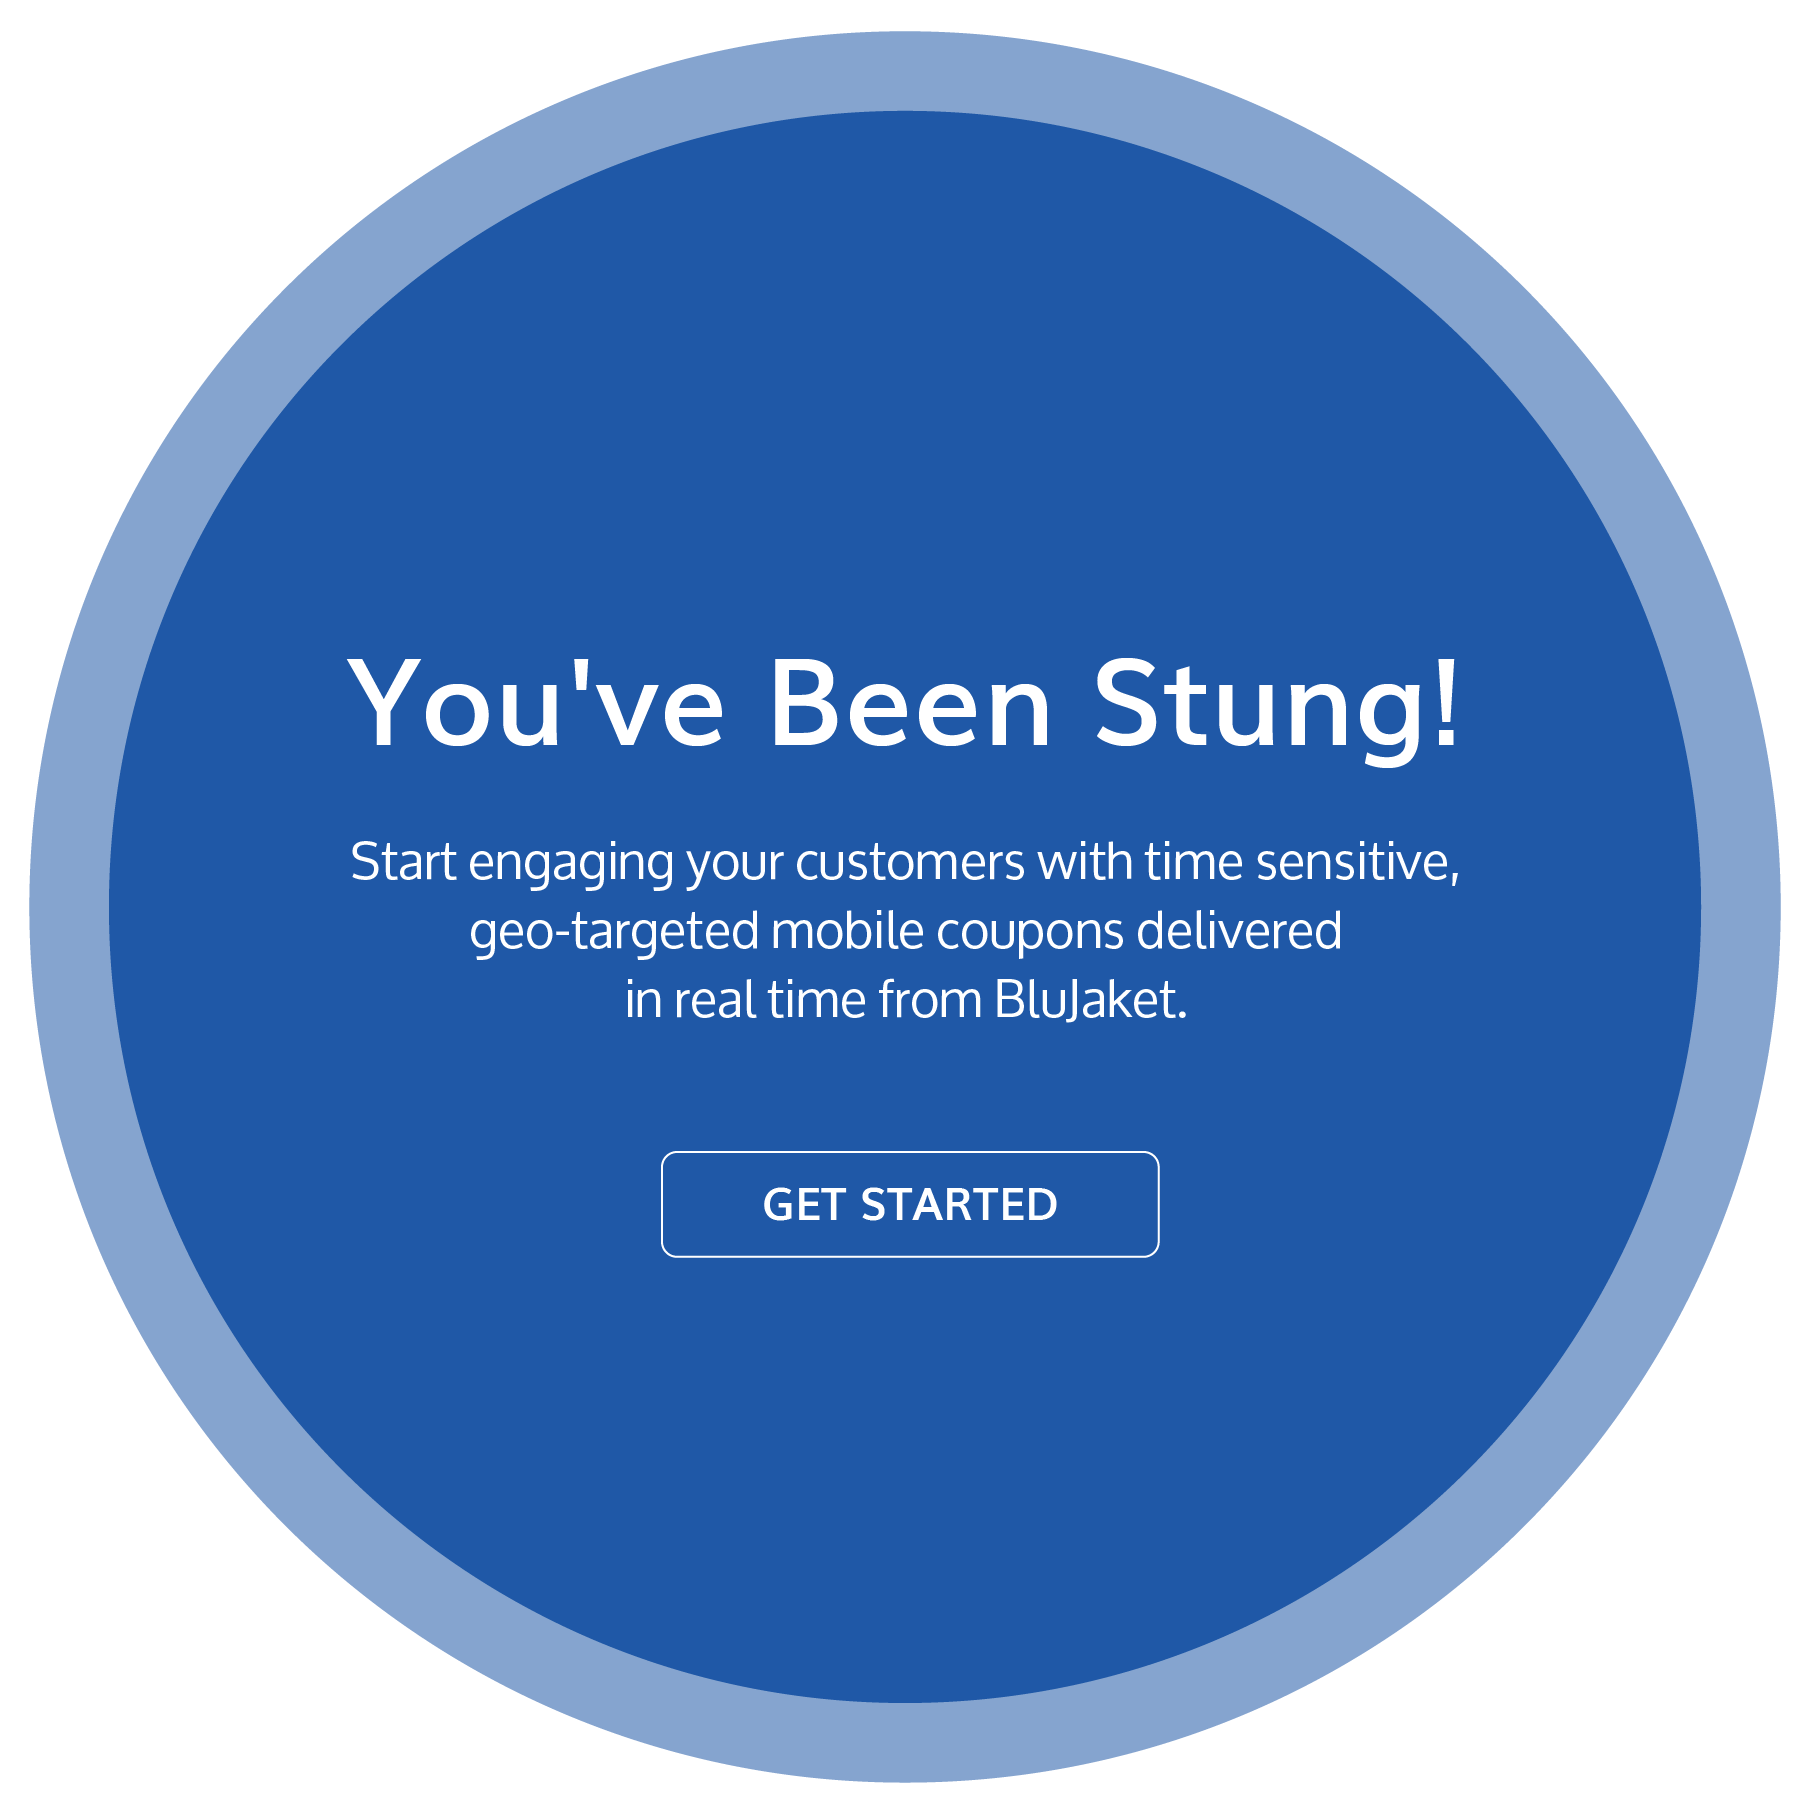 You've been stung start engaging your customers with time sensative geo targeted mobile coupons delivered in real time from blujaket